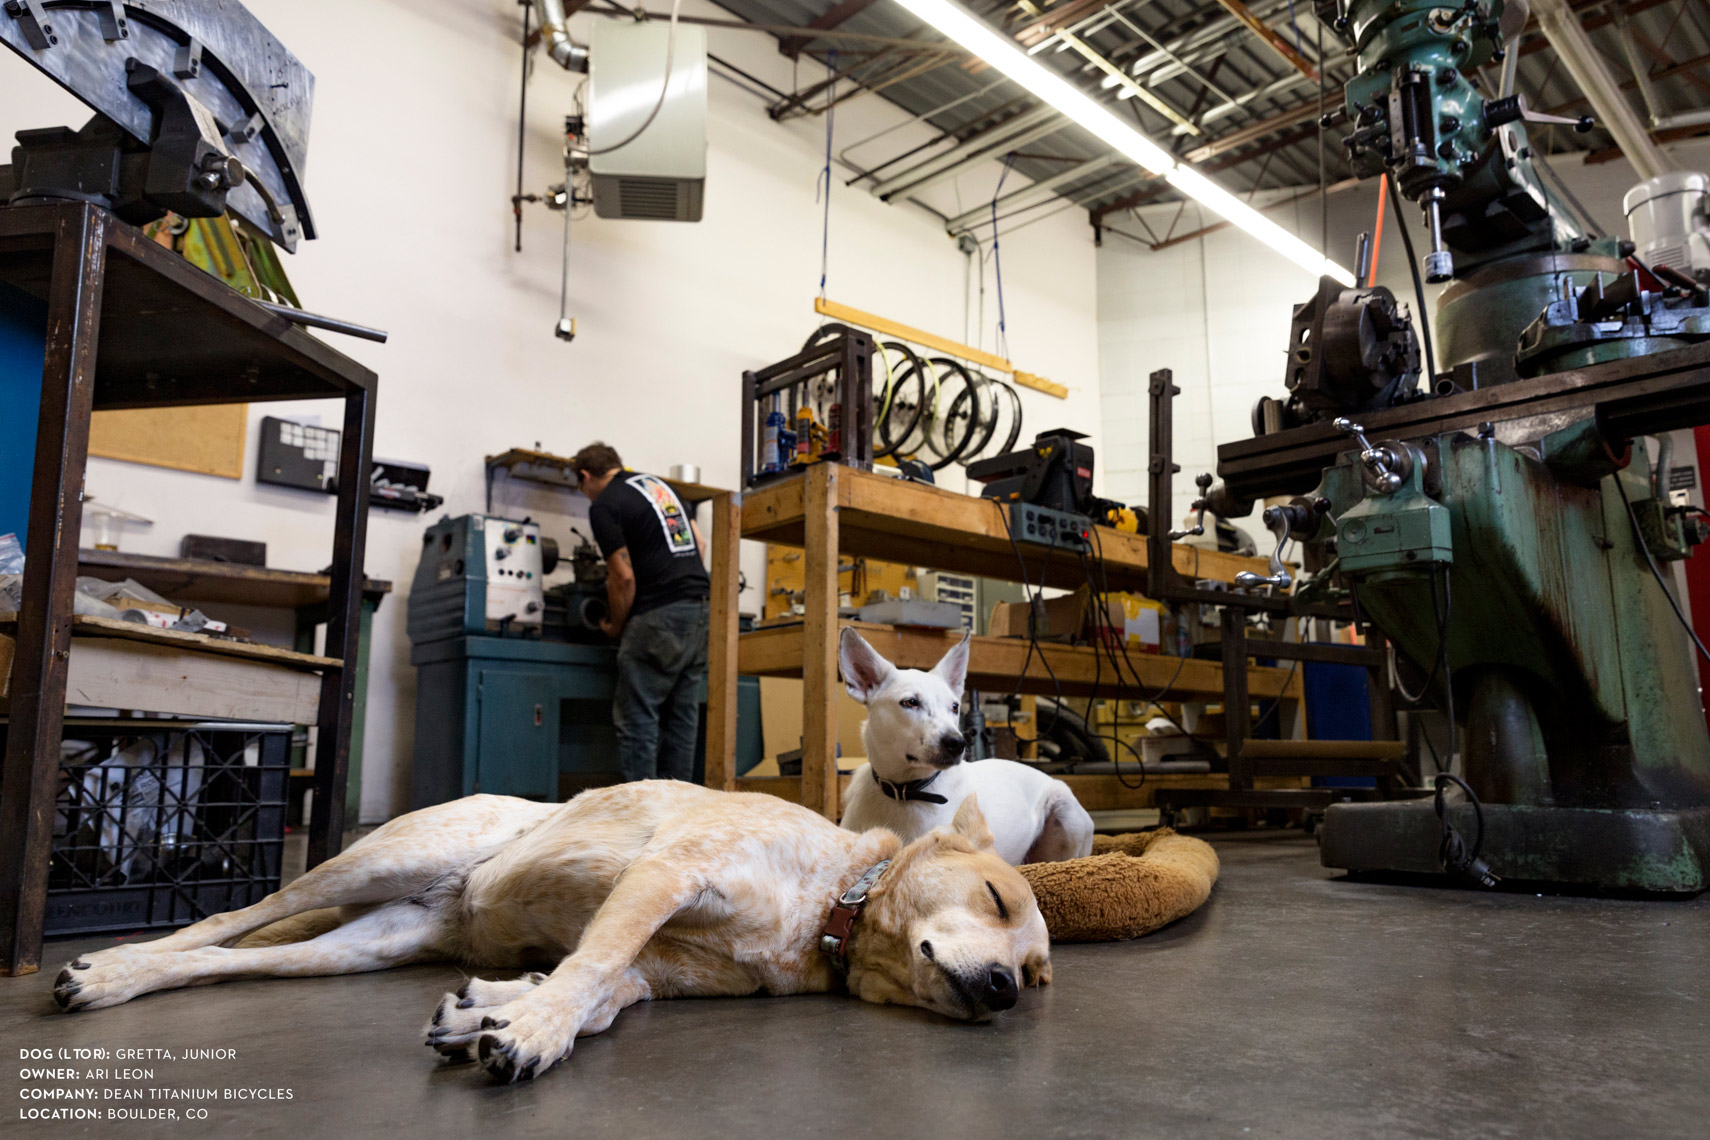 Dogs at work: Getta and Junior at Dean Titanium Cycles